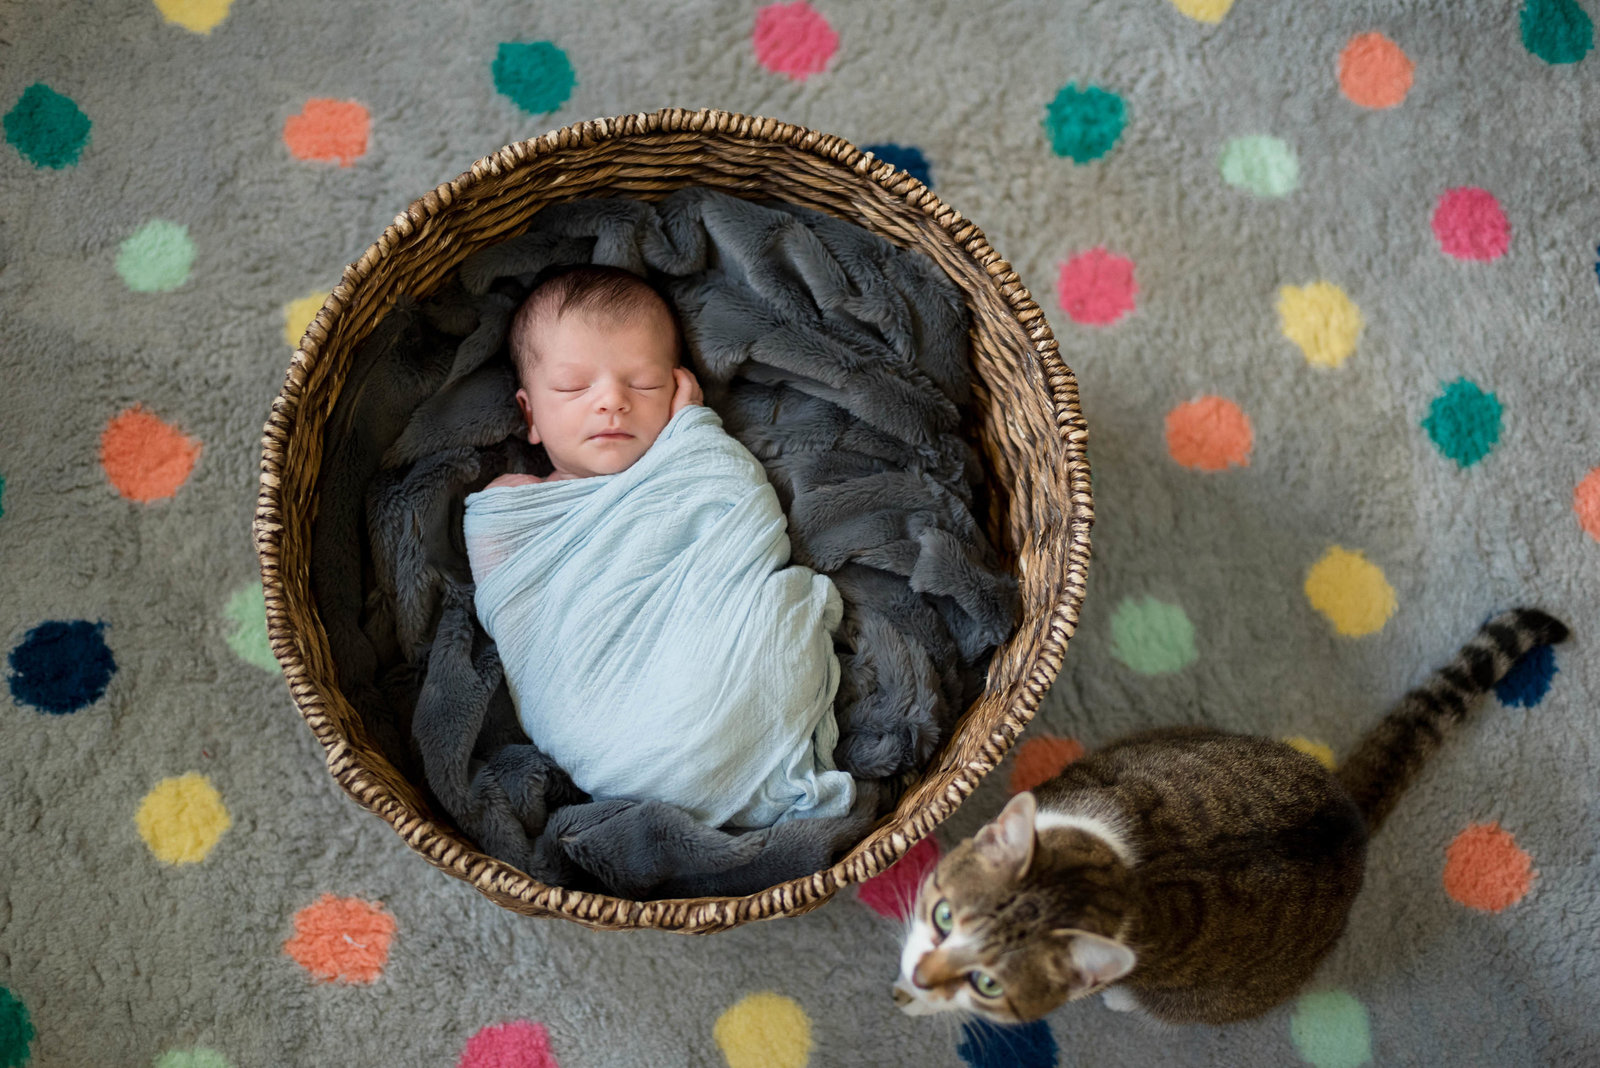 Boston-Newborn-Photographer-Lifestyle-Documentary-Home-Styled-Session-376